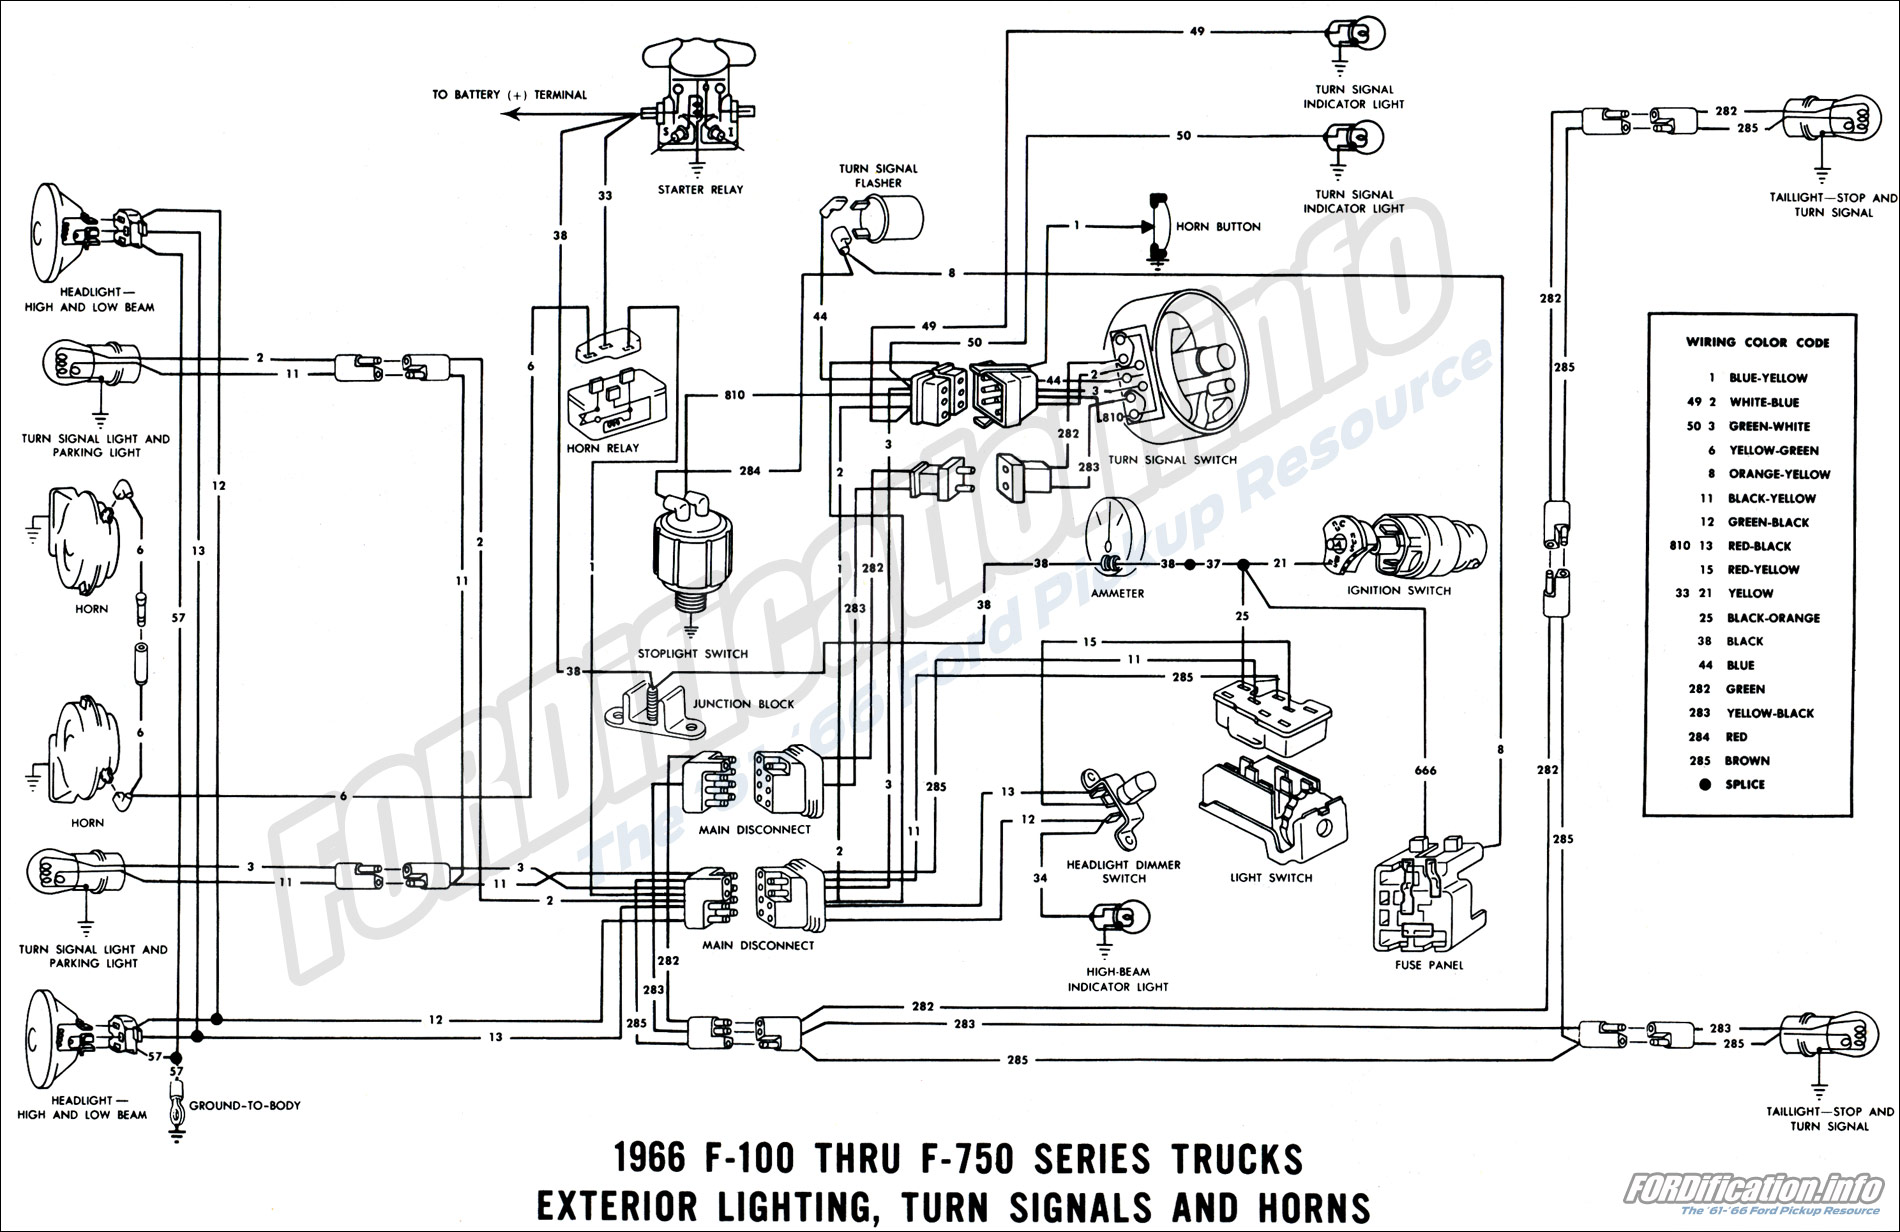 [SCHEMATICS_4FR]  1966 Ford Truck Wiring Diagrams - FORDification.info - The '61-'66 Ford  Pickup Resource | 1966 Ford Truck Wiring Diagram |  | FORDification.info